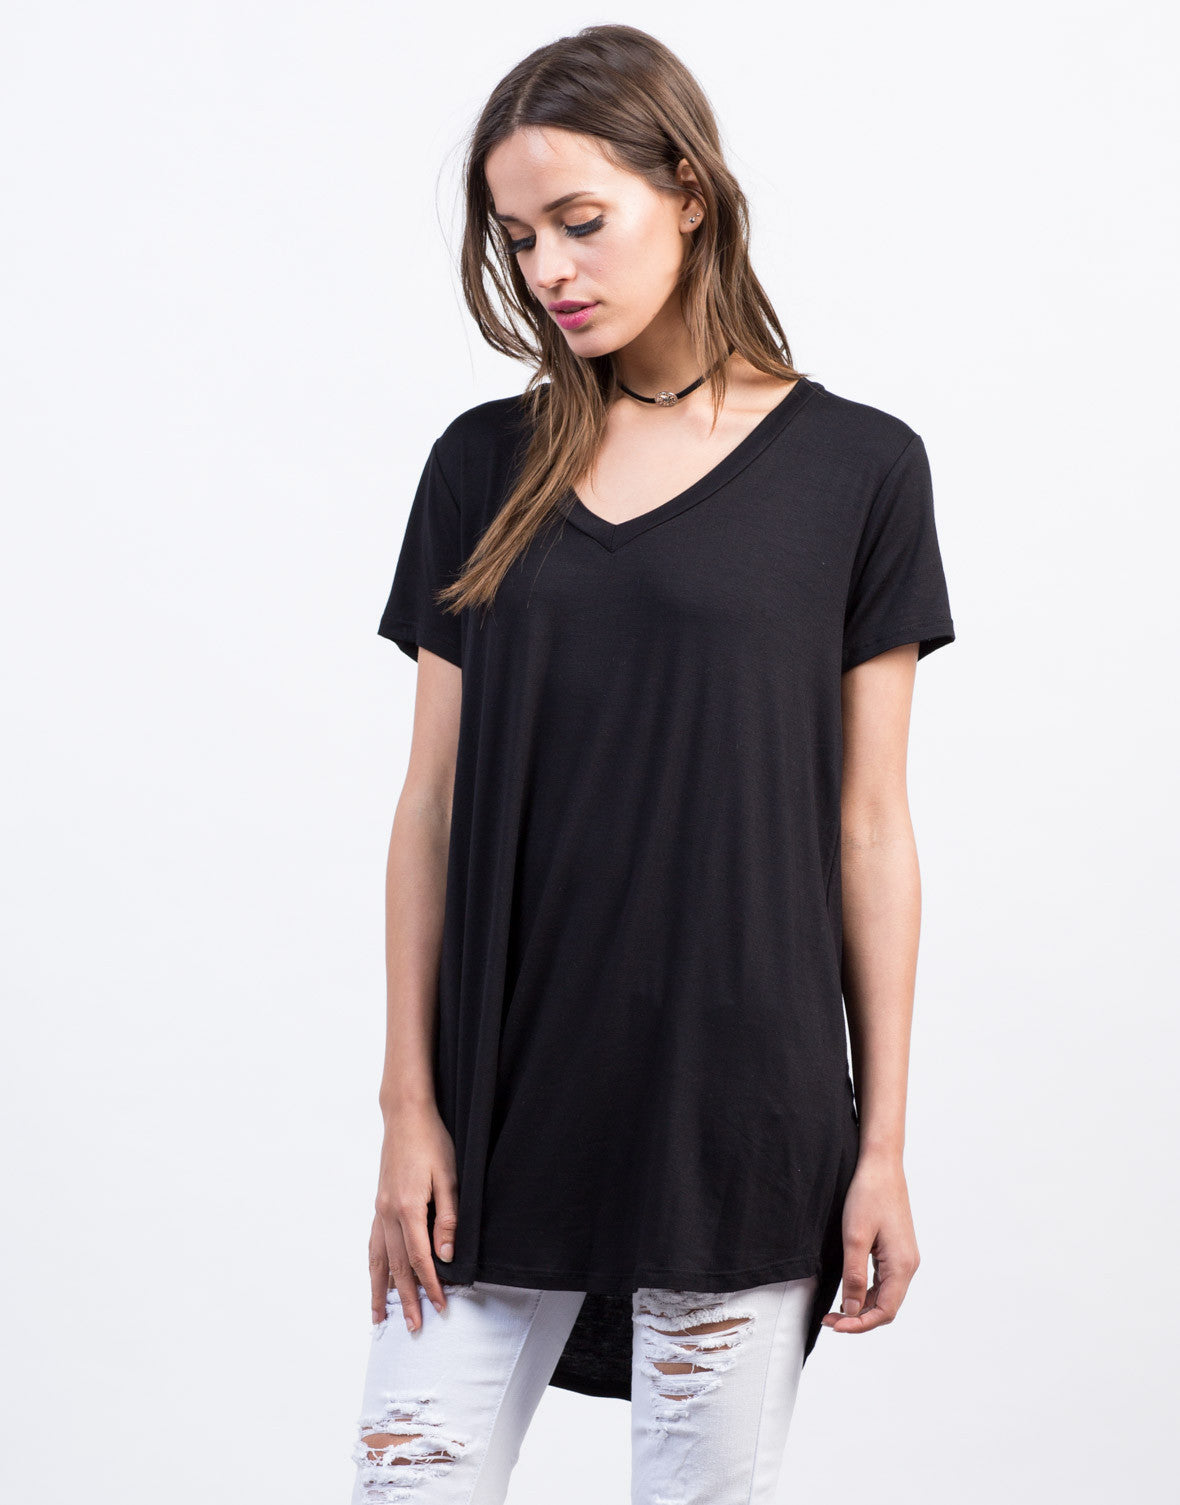 b042df811 Basic T-Shirt Tunic Top - Short Sleeve Top - Flowy T-Shirt – 2020AVE